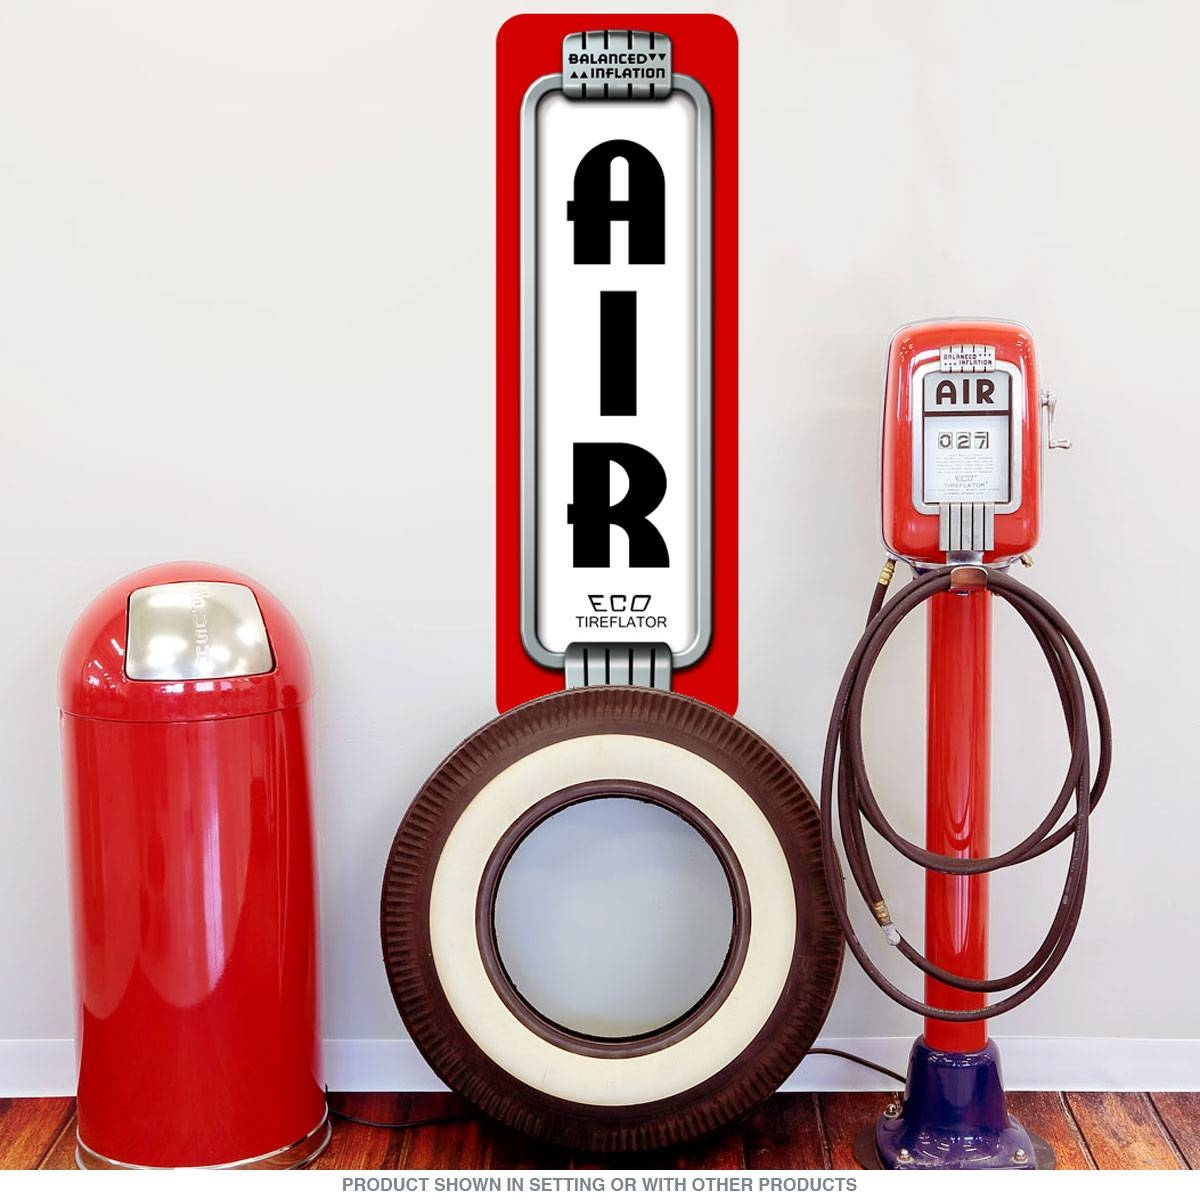 Air Pump Art Deco Gas Station Wall Decal | Garage Decor Regarding 2018 Art Deco Wall Decals (View 16 of 20)